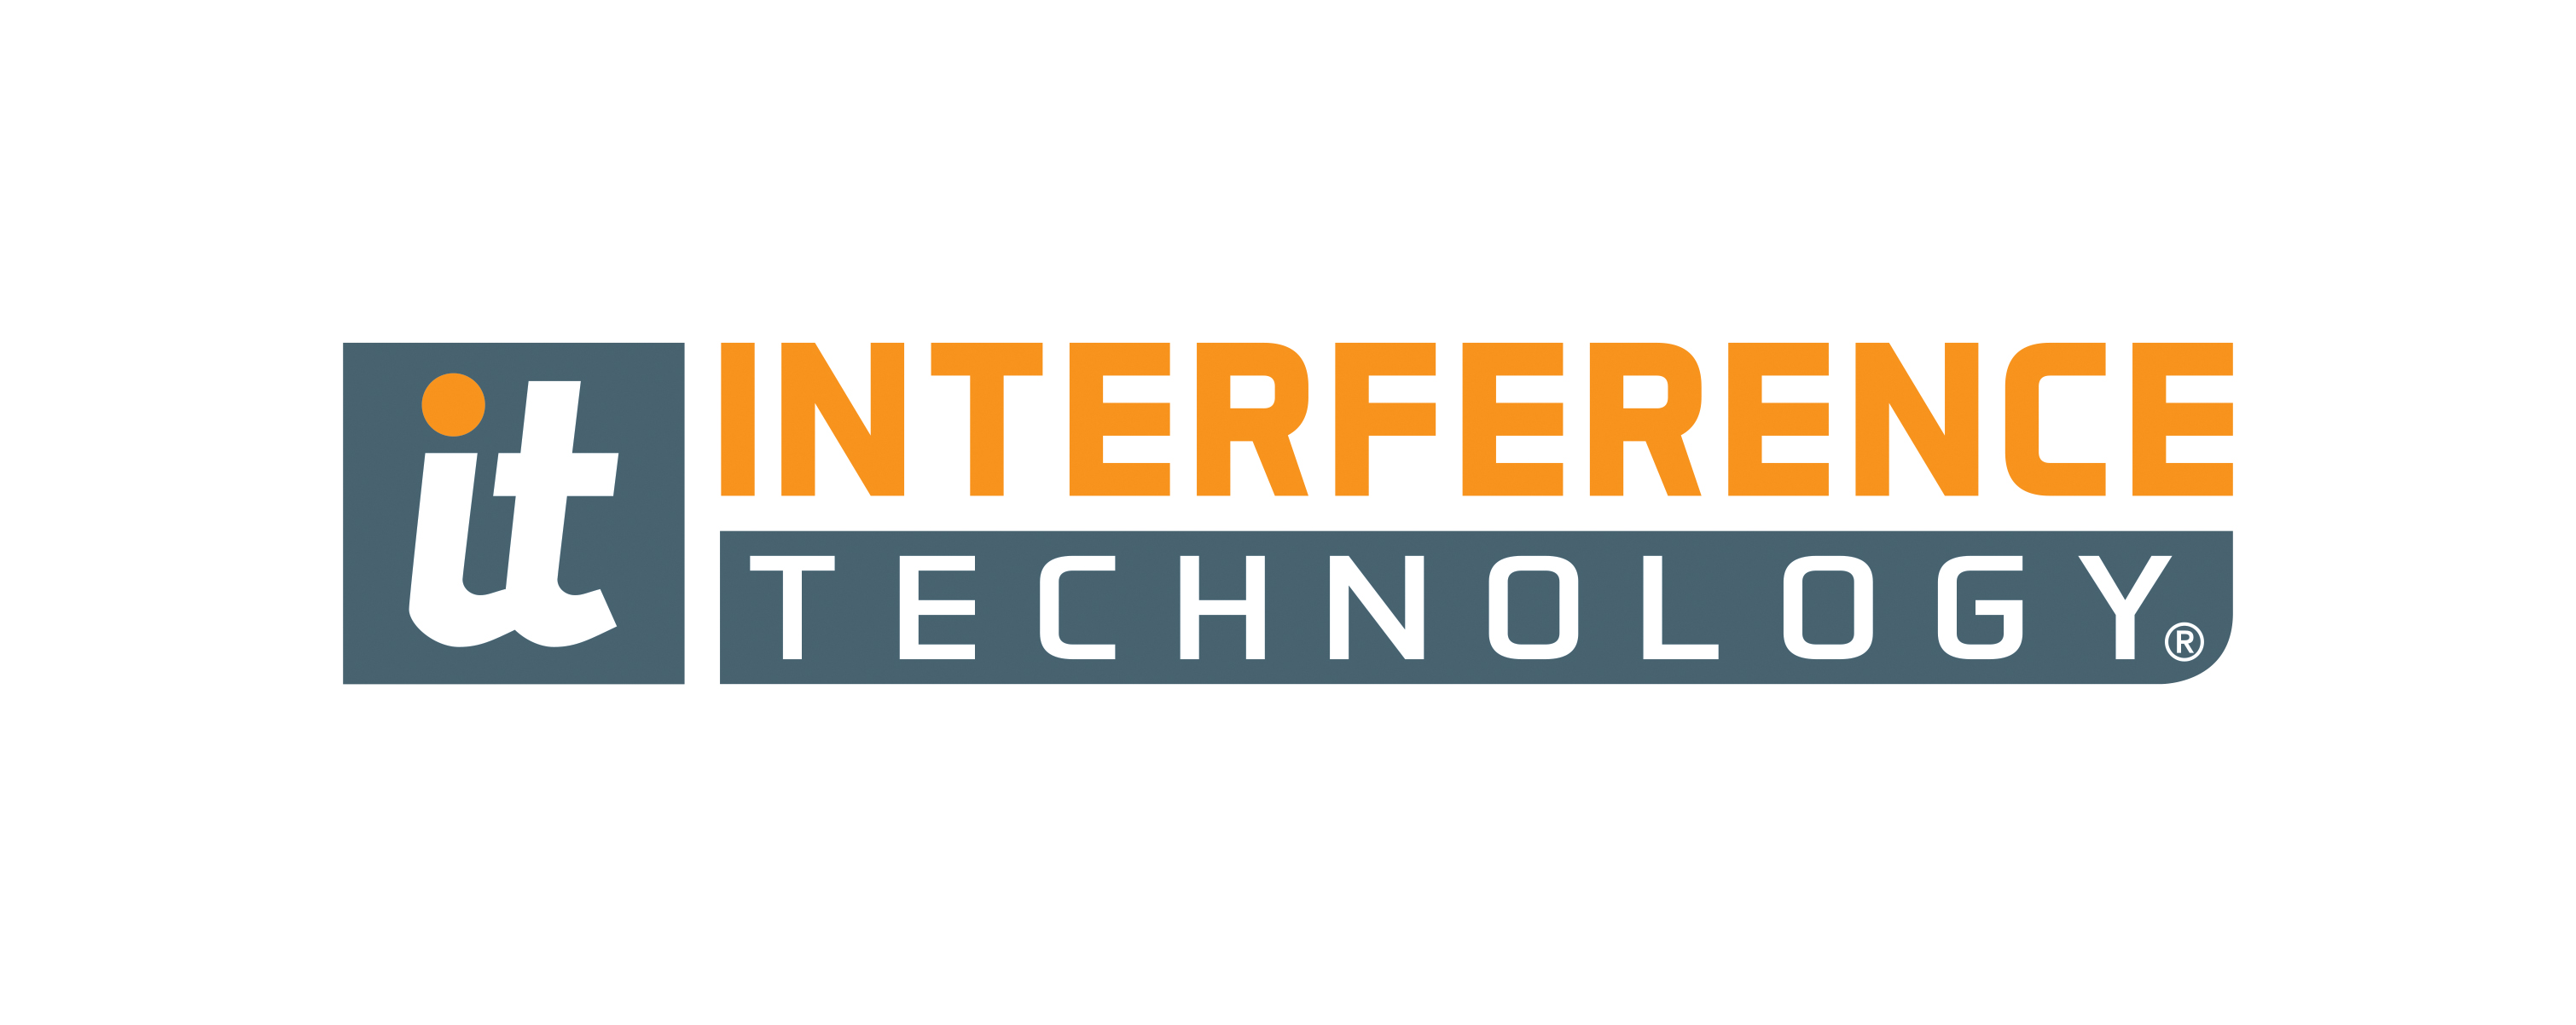 Interference Technology